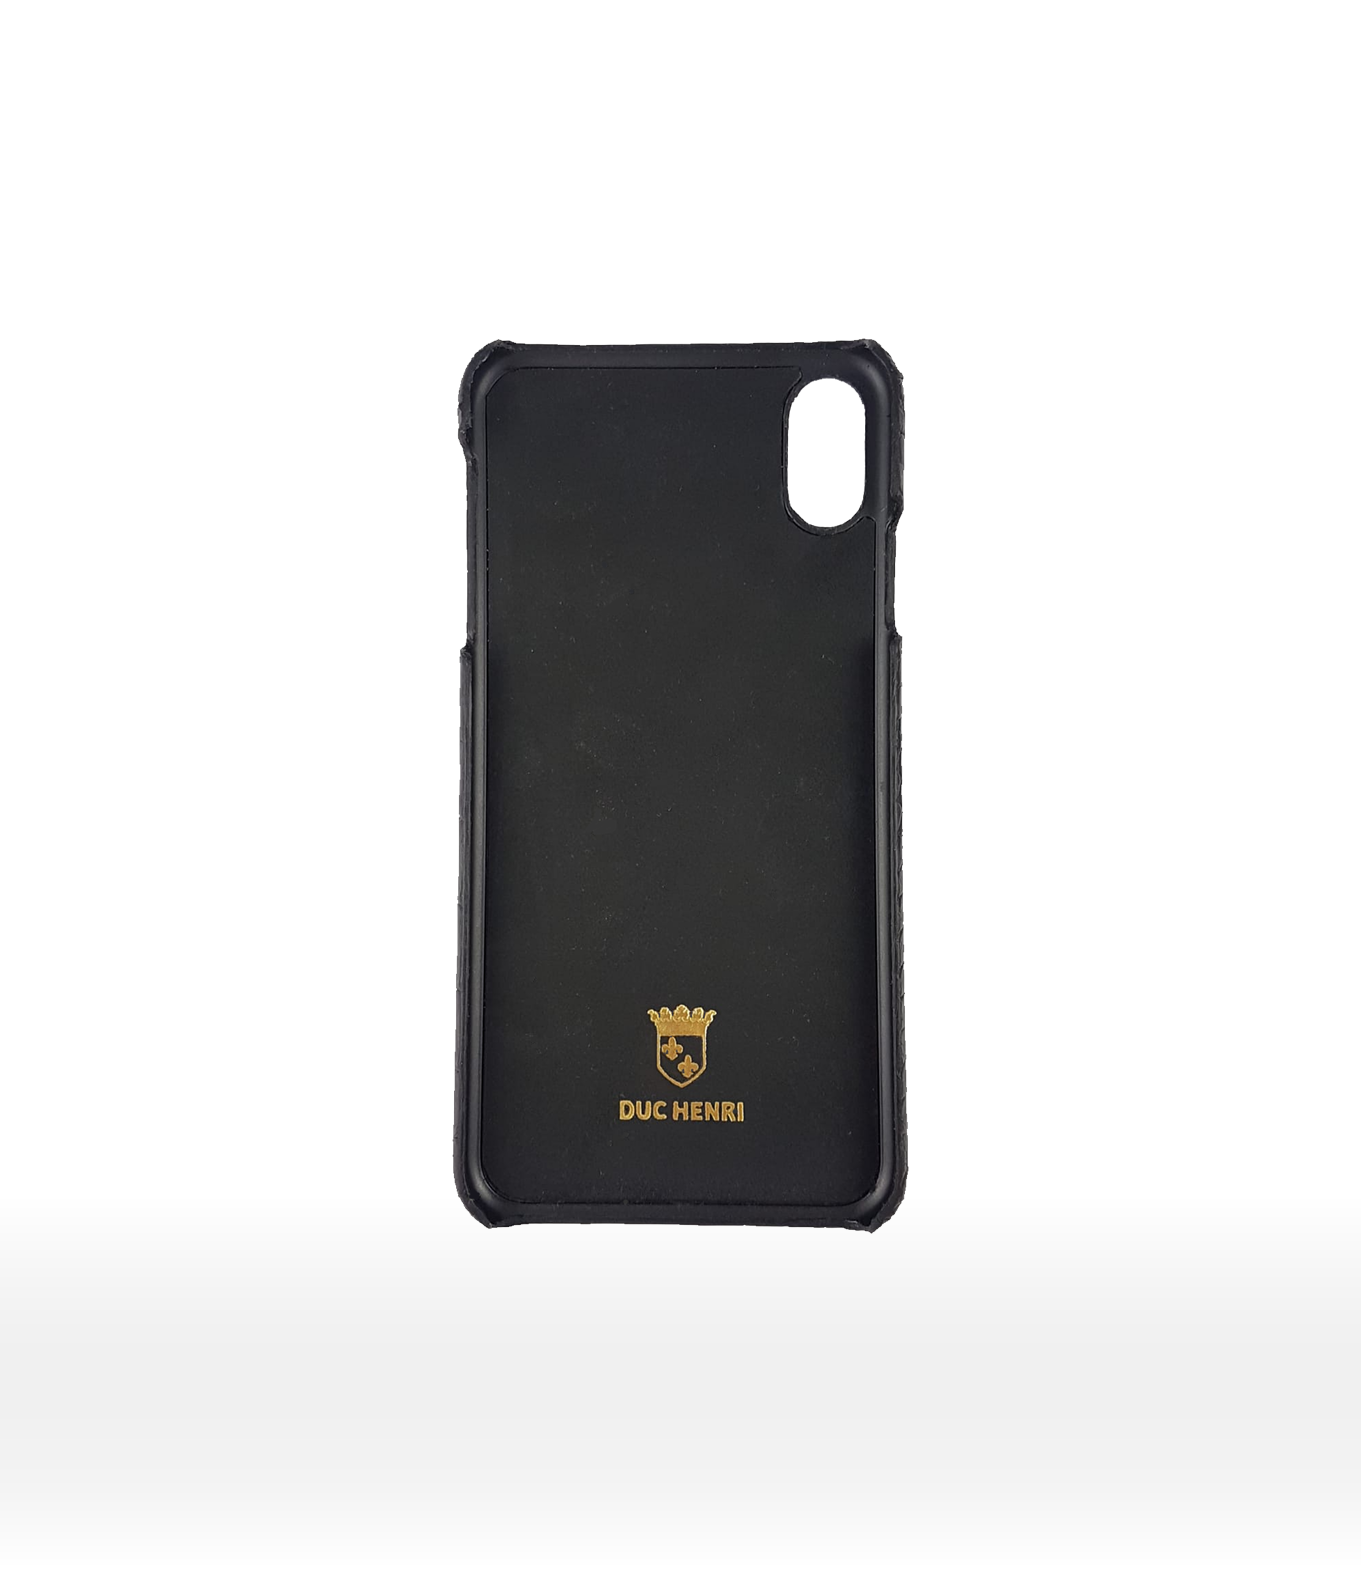 DUC HENRI - Calf iPhone Case Large Squall